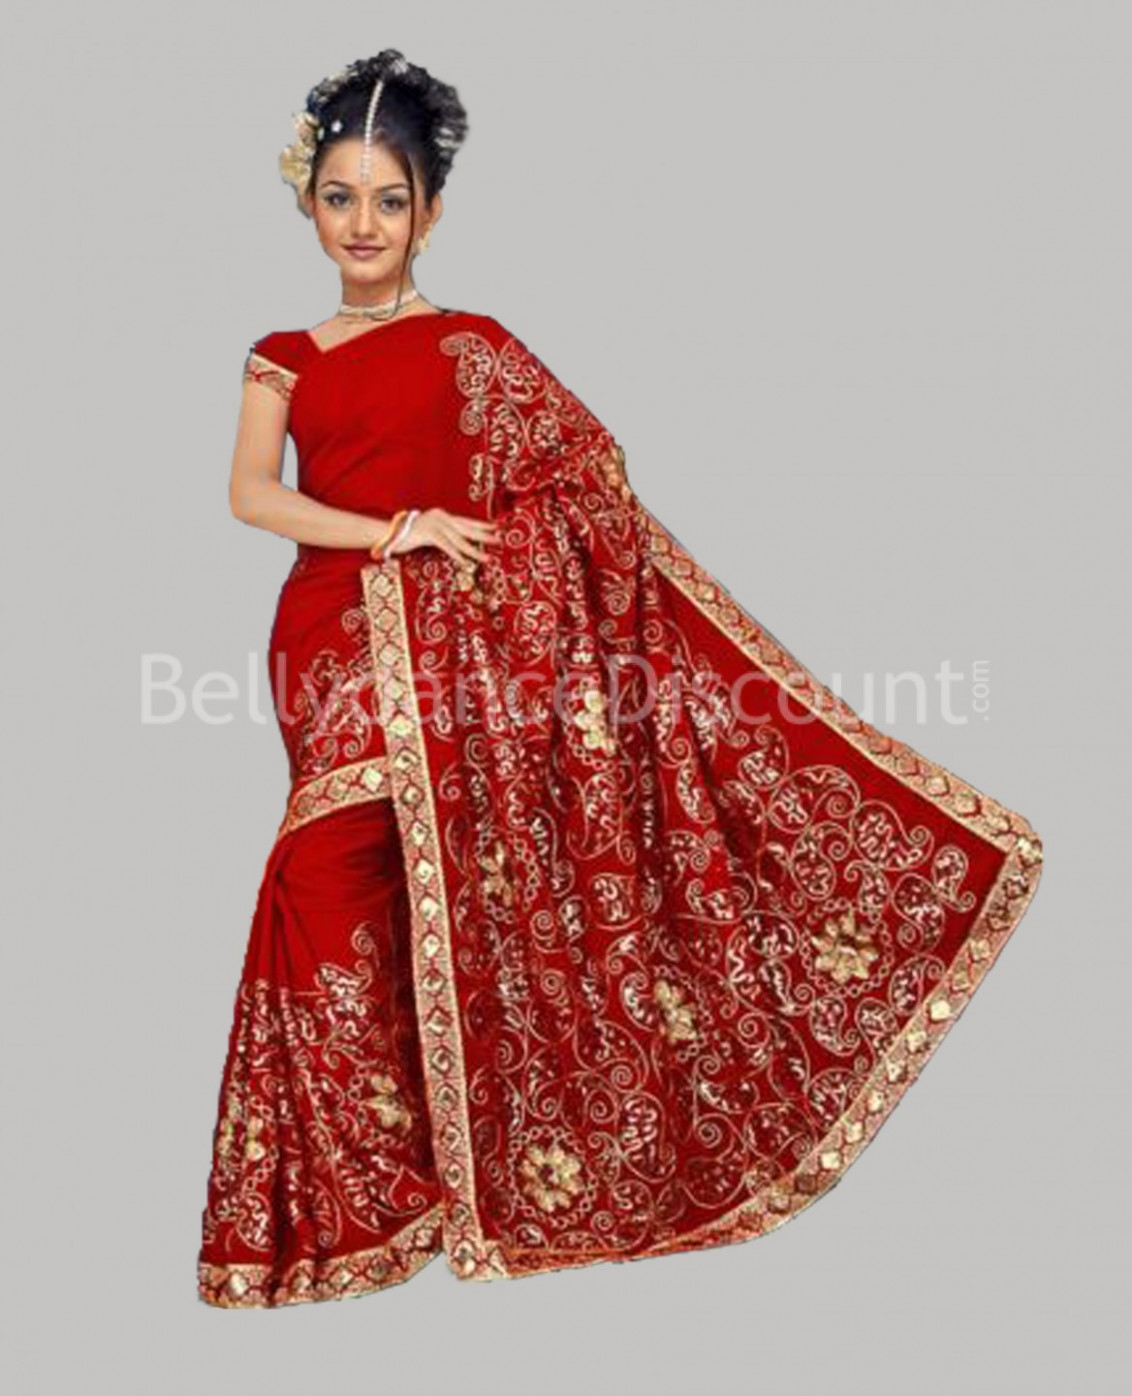 Haute-couture Bollywood dance Saree red ...